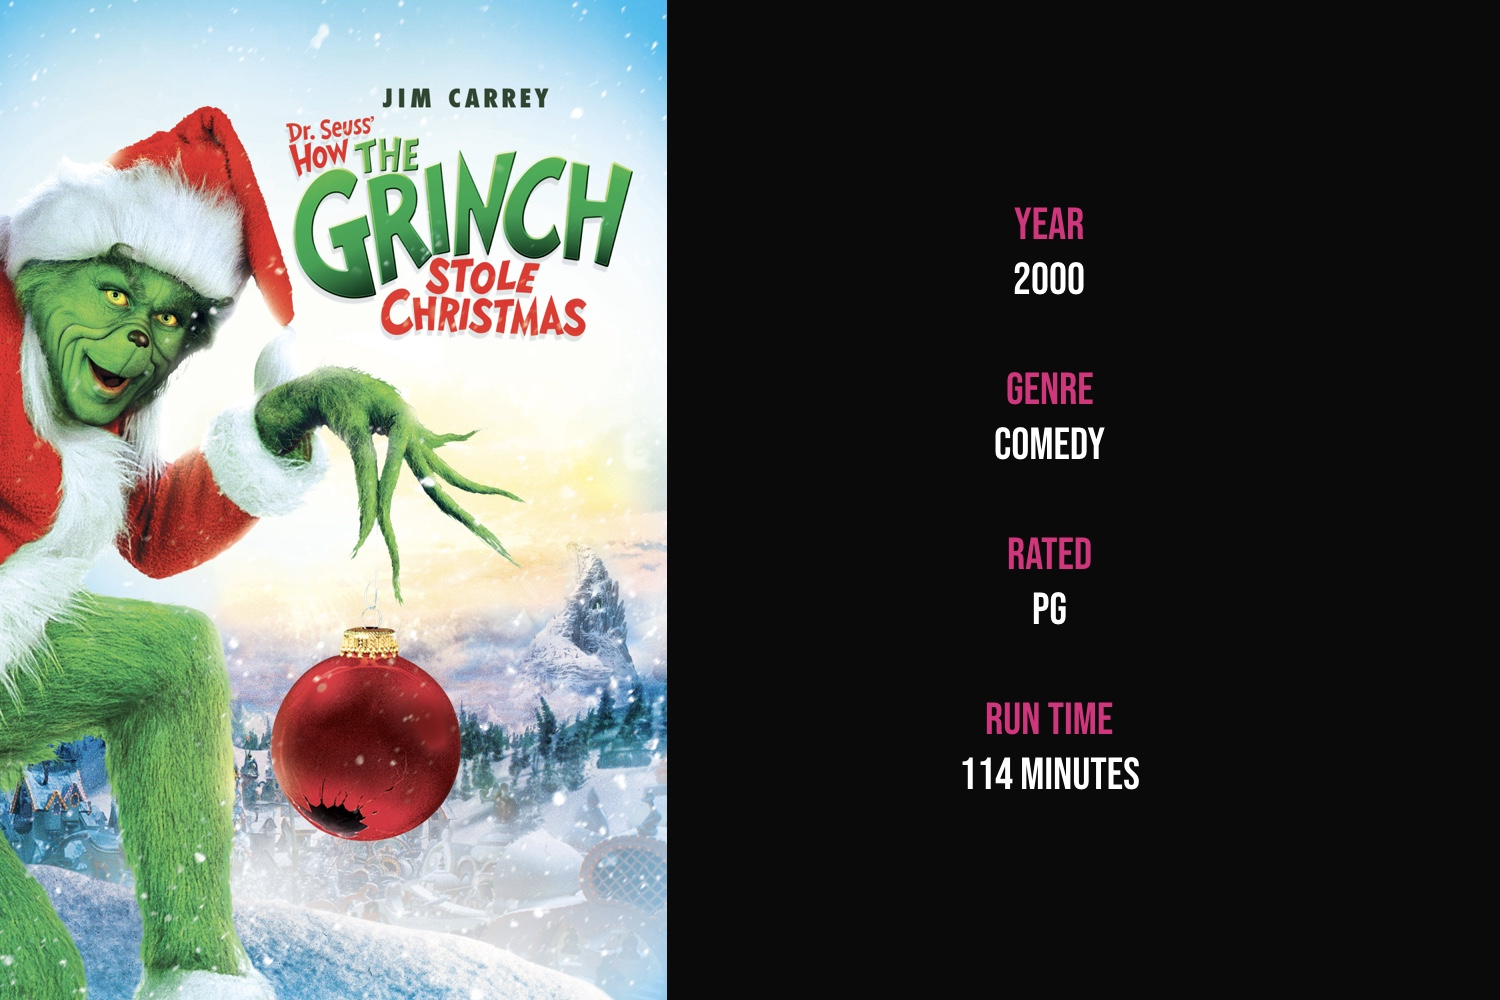 Dr. Seuss' How the Grinch Stole Christmas - The Grinch plans on destroying Christmas for the citizens of Whoville until a little girl teaches him the true meaning of Christmas.iTunes | Amazon